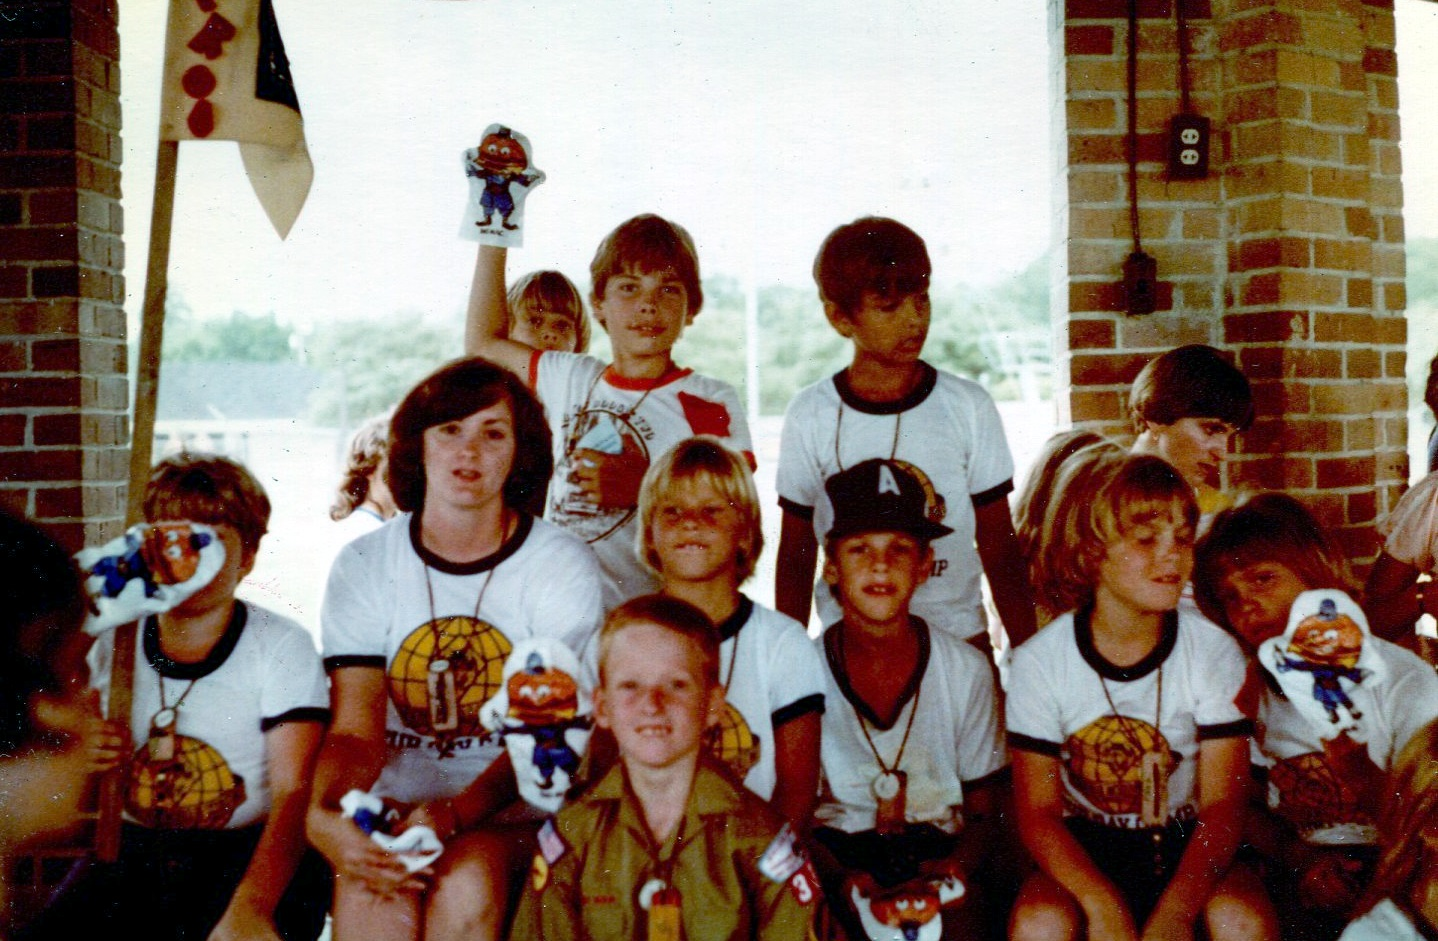 Tammany Family Cub Scout Camp 1978